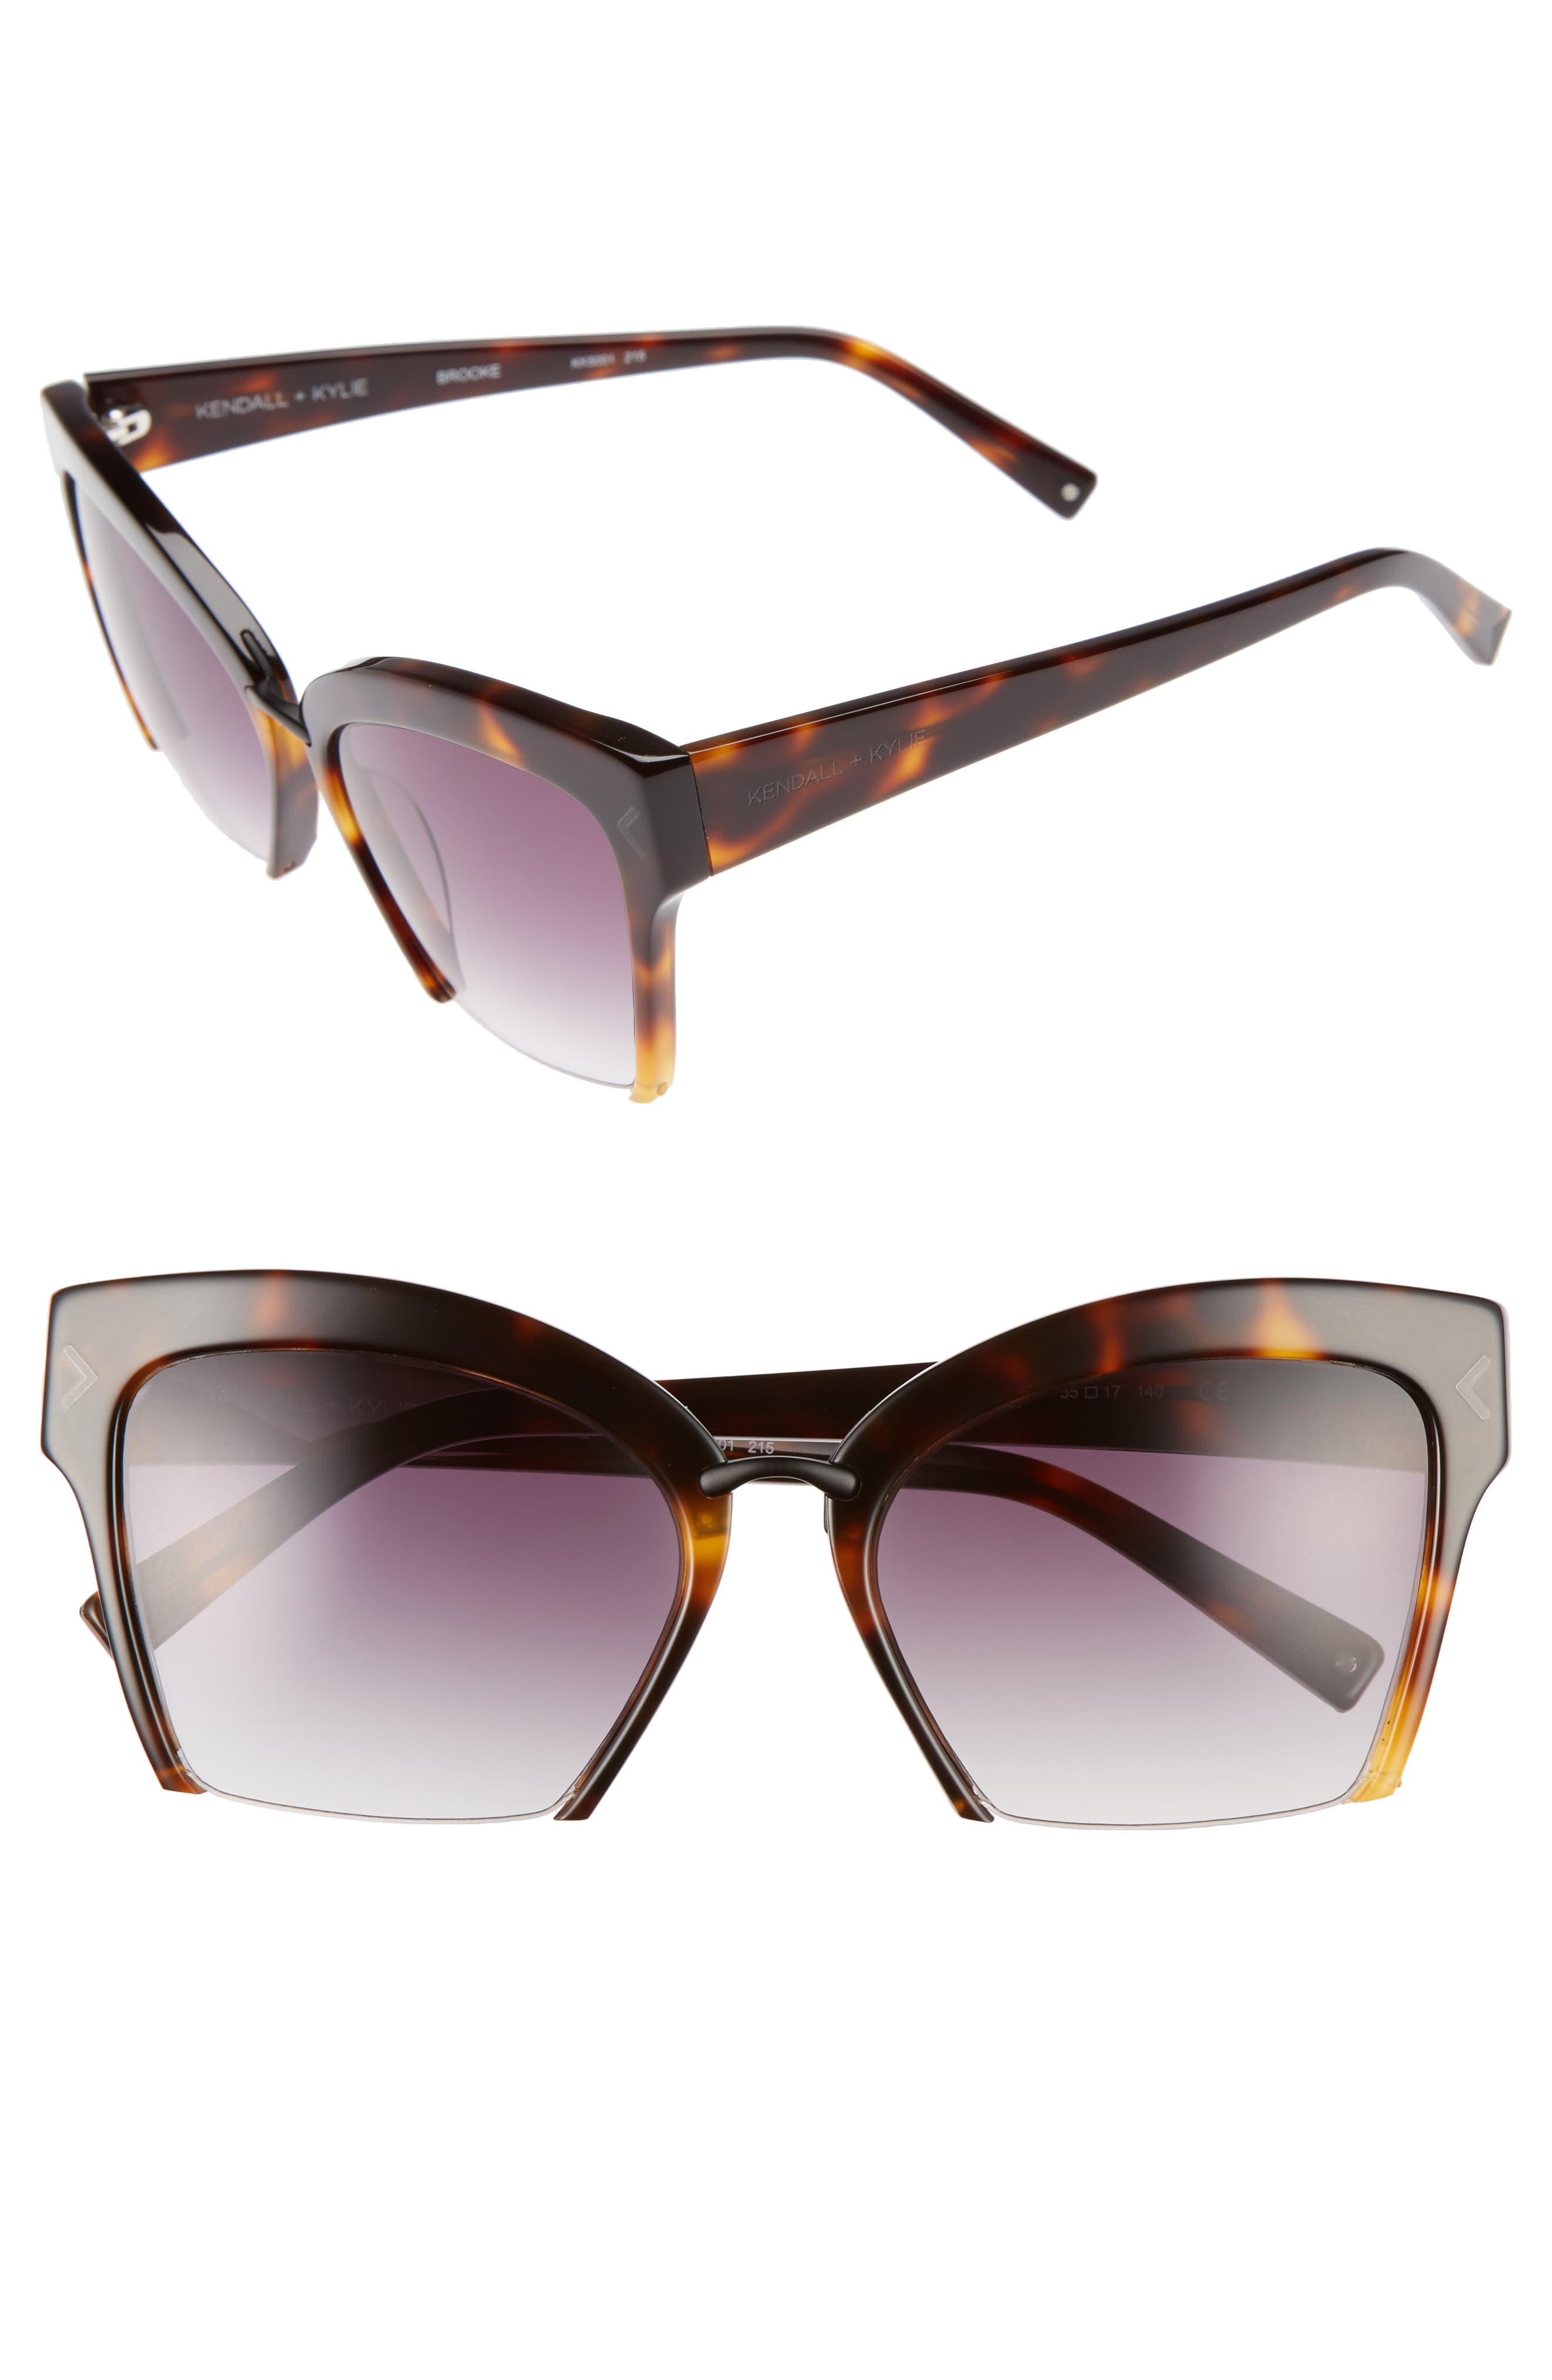 KENDALL + KYLIE Brooke 55mm Semi Rimless Butterfly